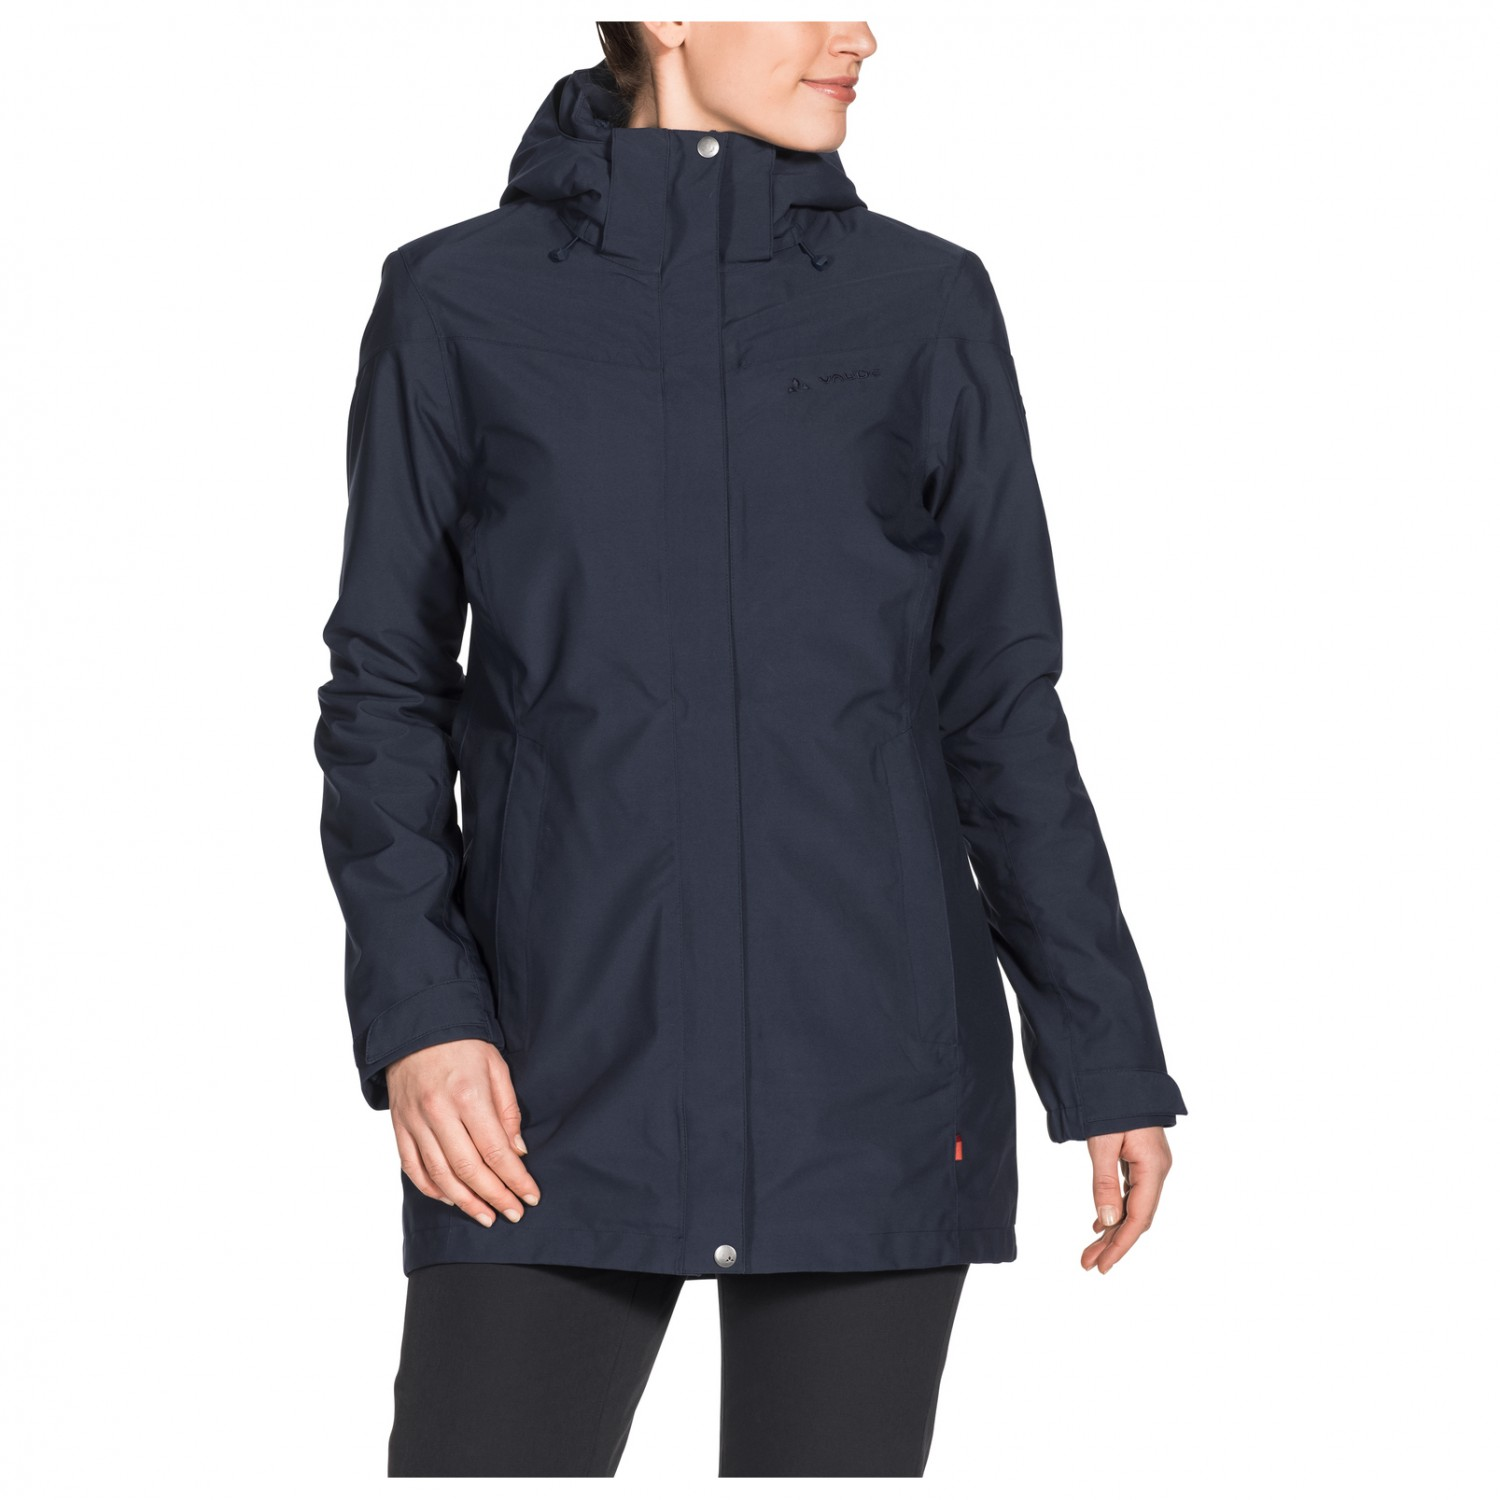 timeless design bdd25 9d1f6 Vaude - Women's Idris 3in1 Parka II - 3-in-1 jacket - Eclipse | 38 (EU)